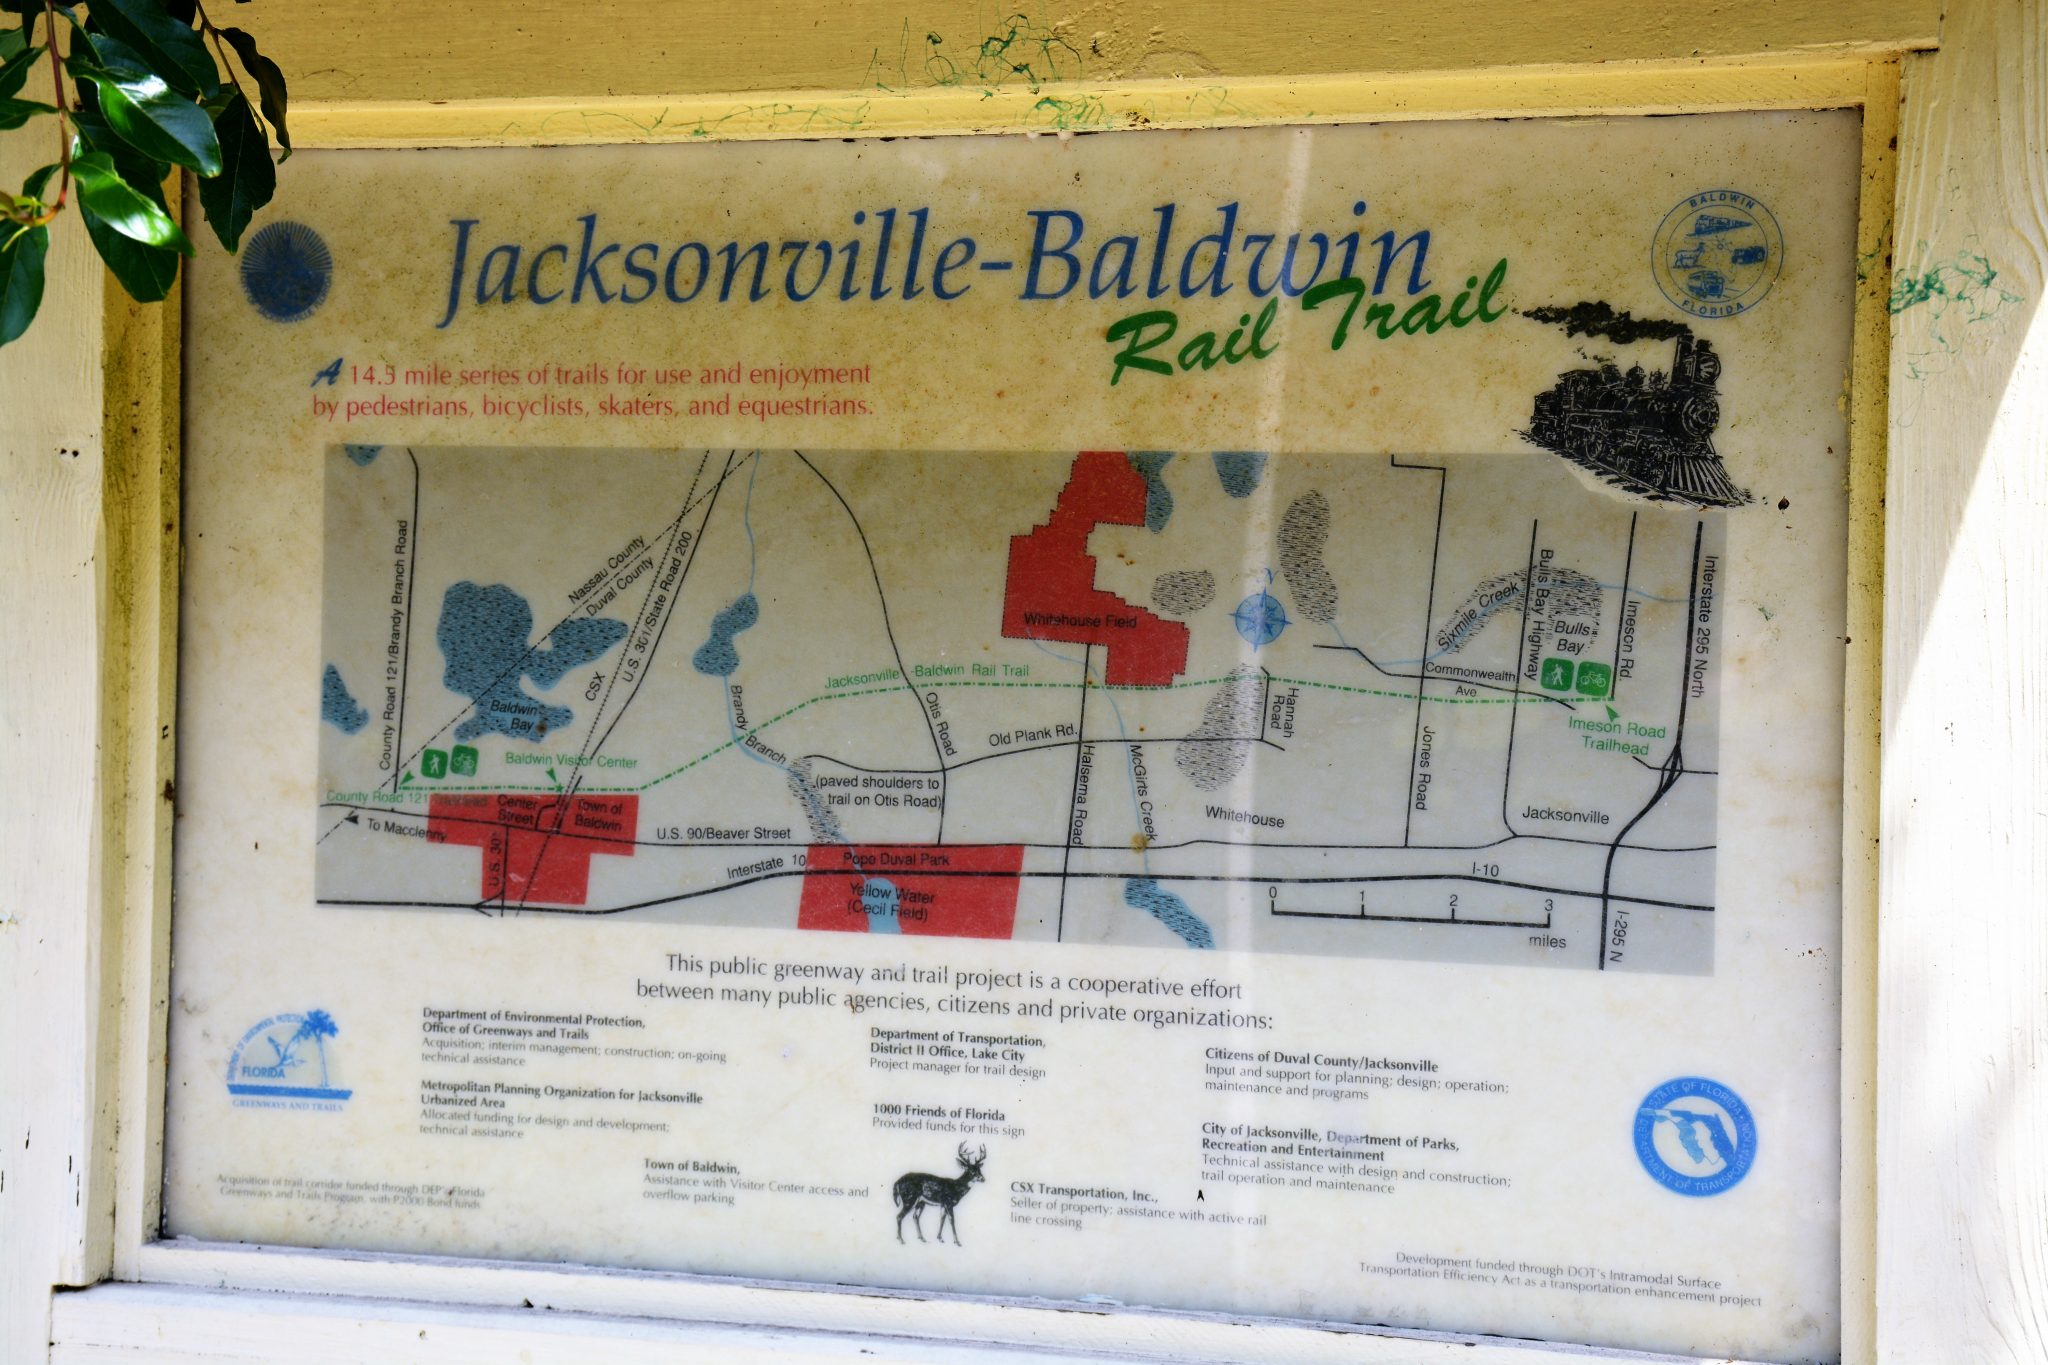 Jacksonville-Baldwin Rail Trail map